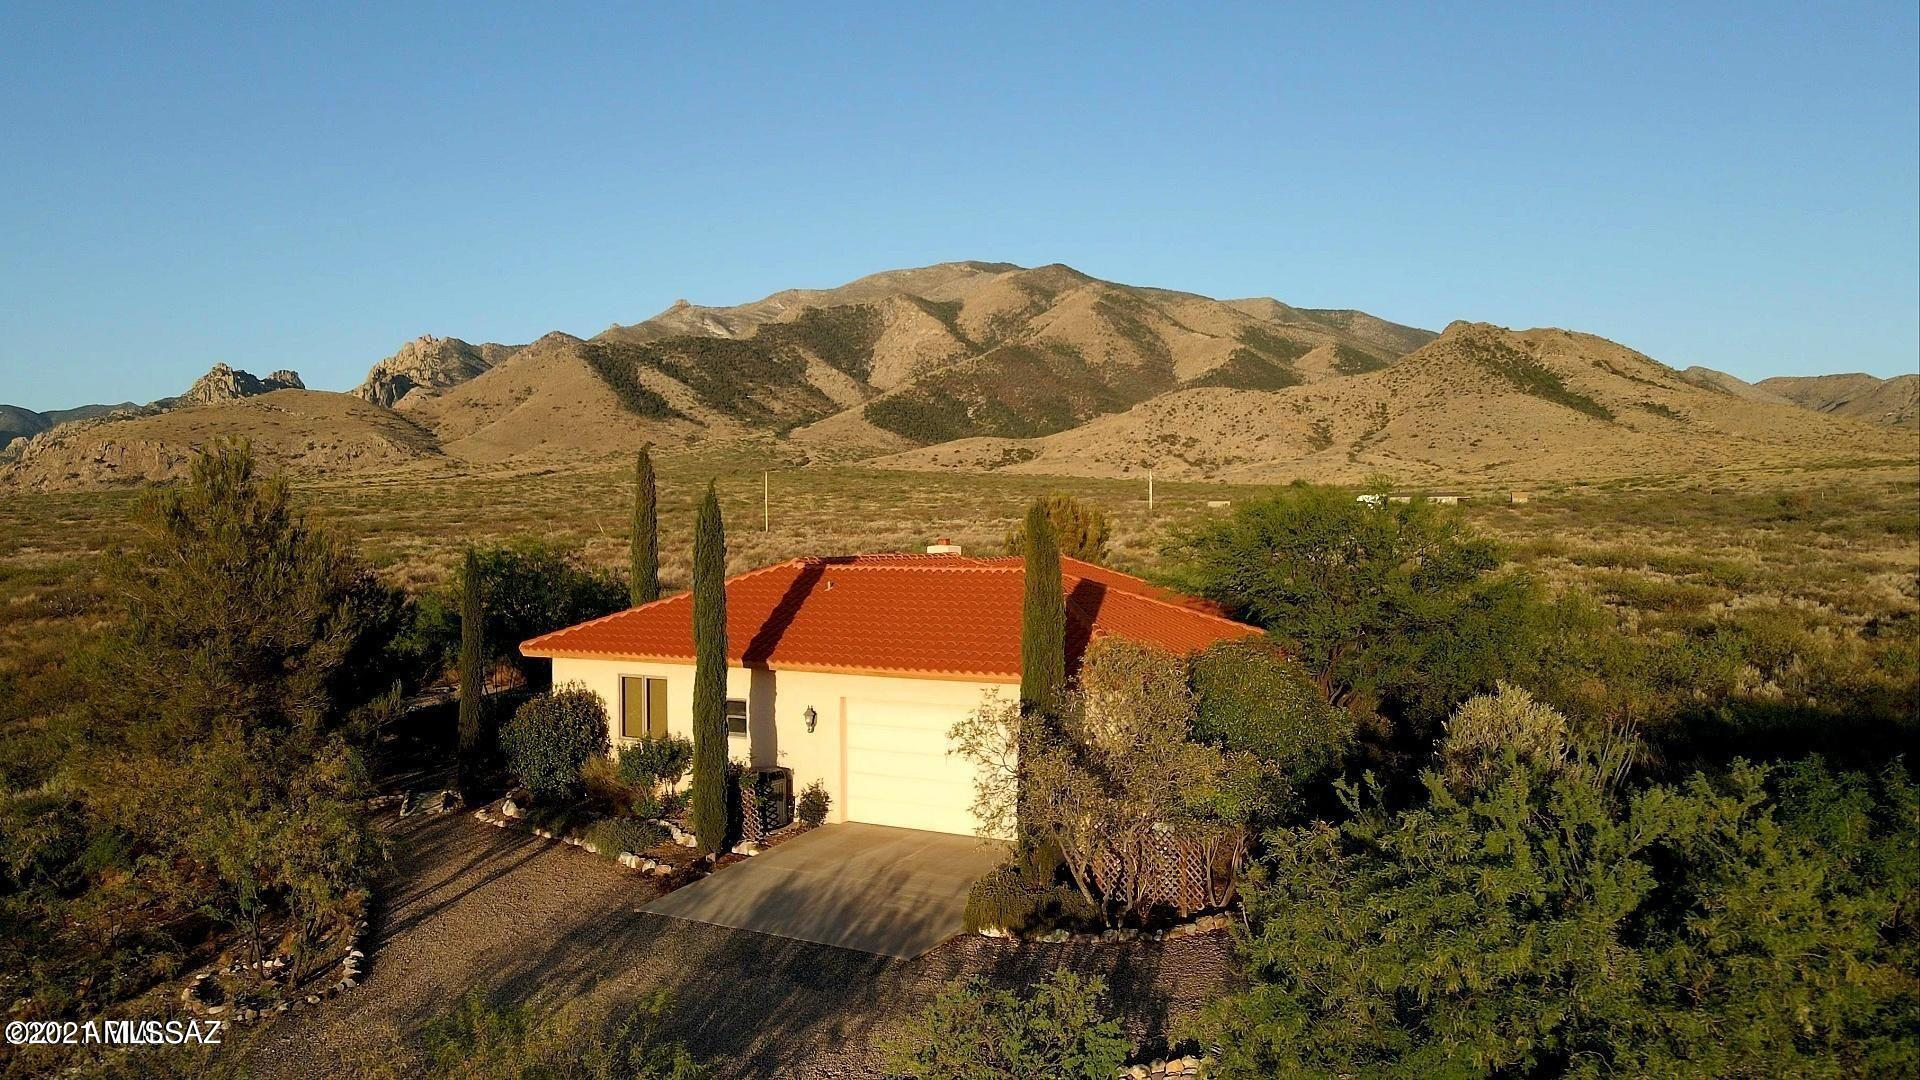 Peaceful custom home surrounded by mountain views and nature.  This tranquil three bedroom home includes a full bathroom in each bedroom, plus a hall bath, extra storage, fireplace, recessed lighting,  AC, entertainment room, solid wood cabinets, covered patio, tile roof, dual pane windows, scored concrete floors, 2 stall barn, 2 car garage, garden area and so much more all on 10 acres!